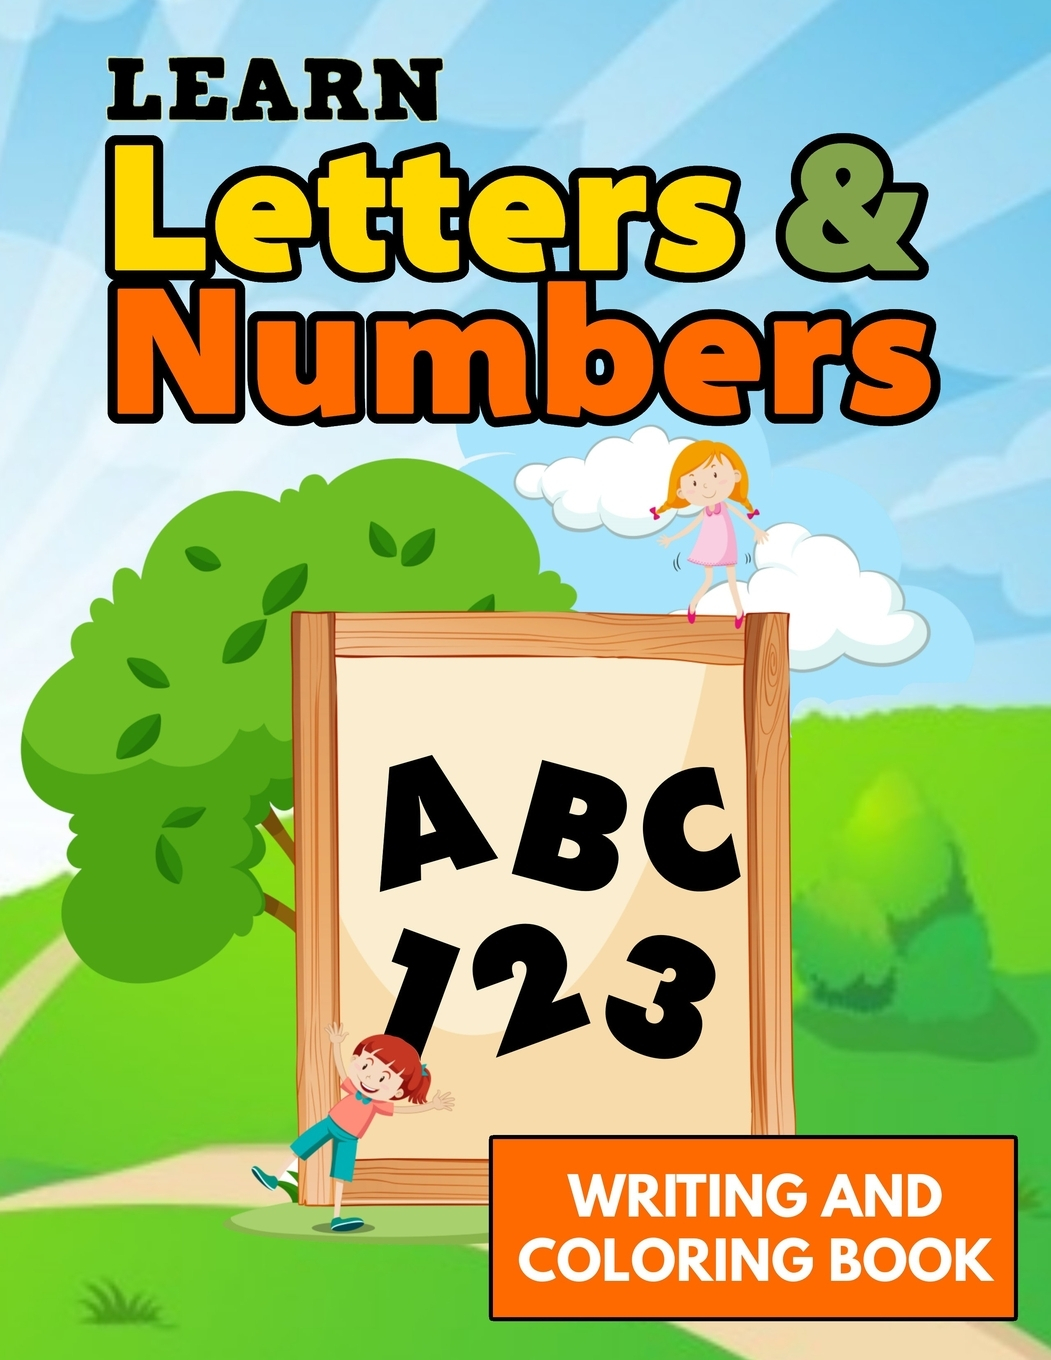 Learn Letters And Numbers Abc 123 Writing And Coloring Book: Landscape  Alphabet Numbers Writing Practice Letter Tracing Book Kids, Activity  Notebook